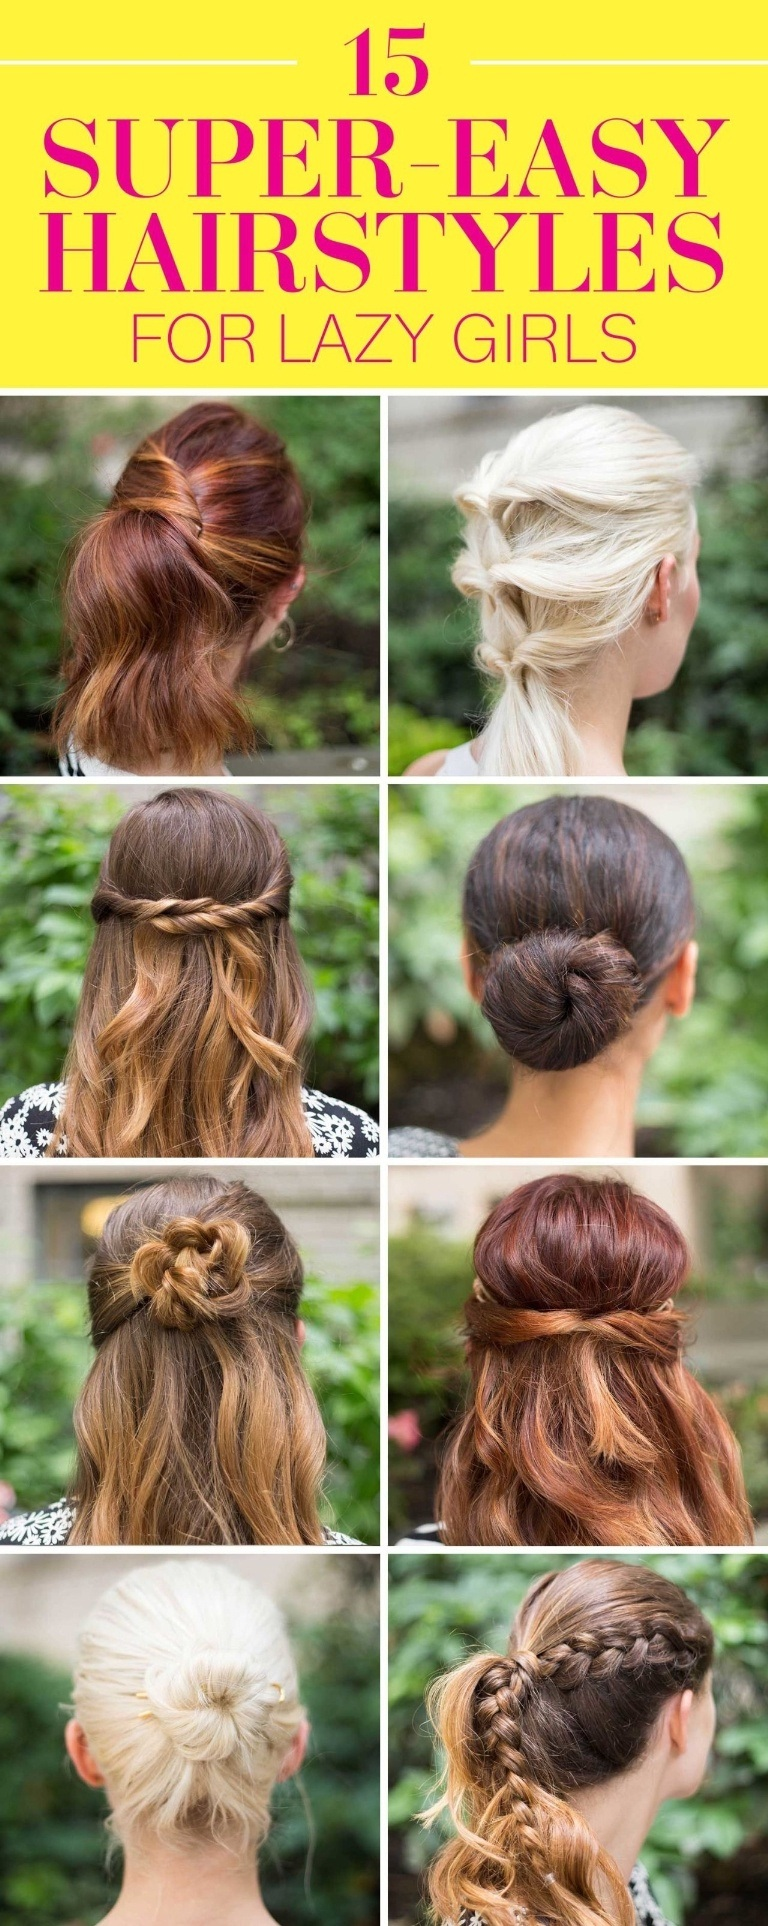 15 Simple And Cute Hairstyle Tutorials: 15 Jolis Coiffures Express Pour Cheveux Mi-longs